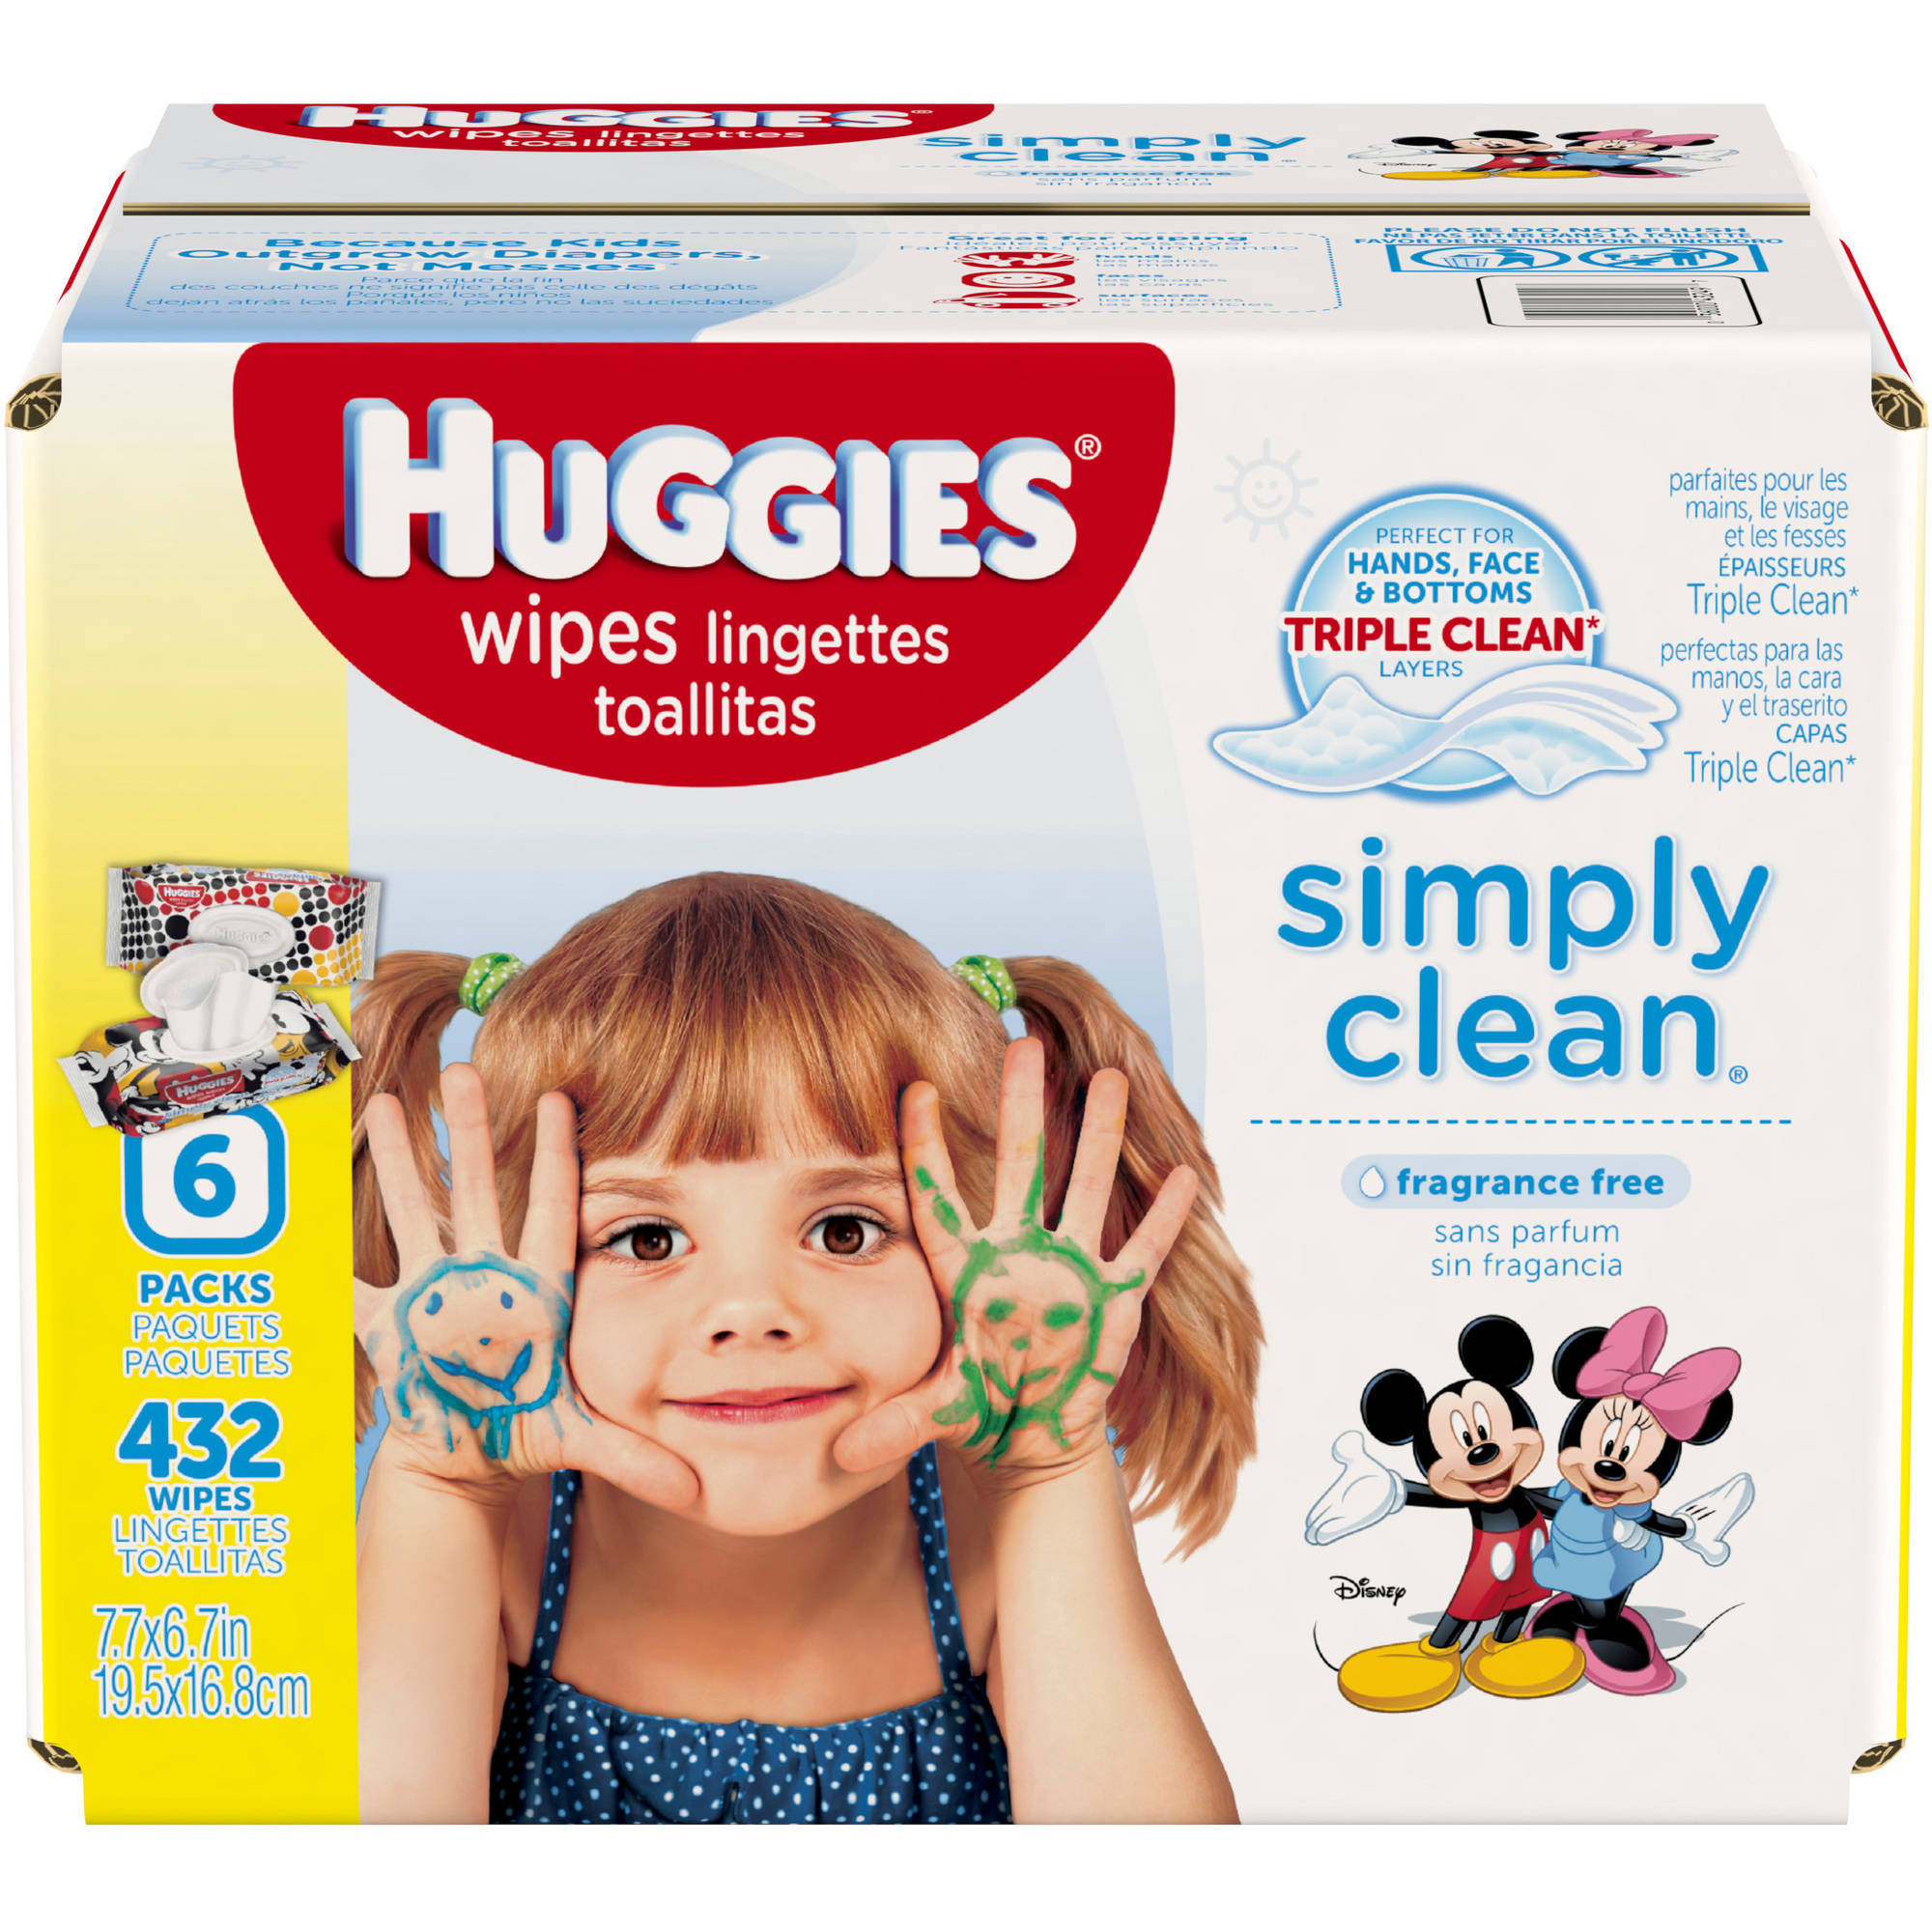 Huggies Simply Clean Fragrance Free Baby Wipes Refill, 432 ct